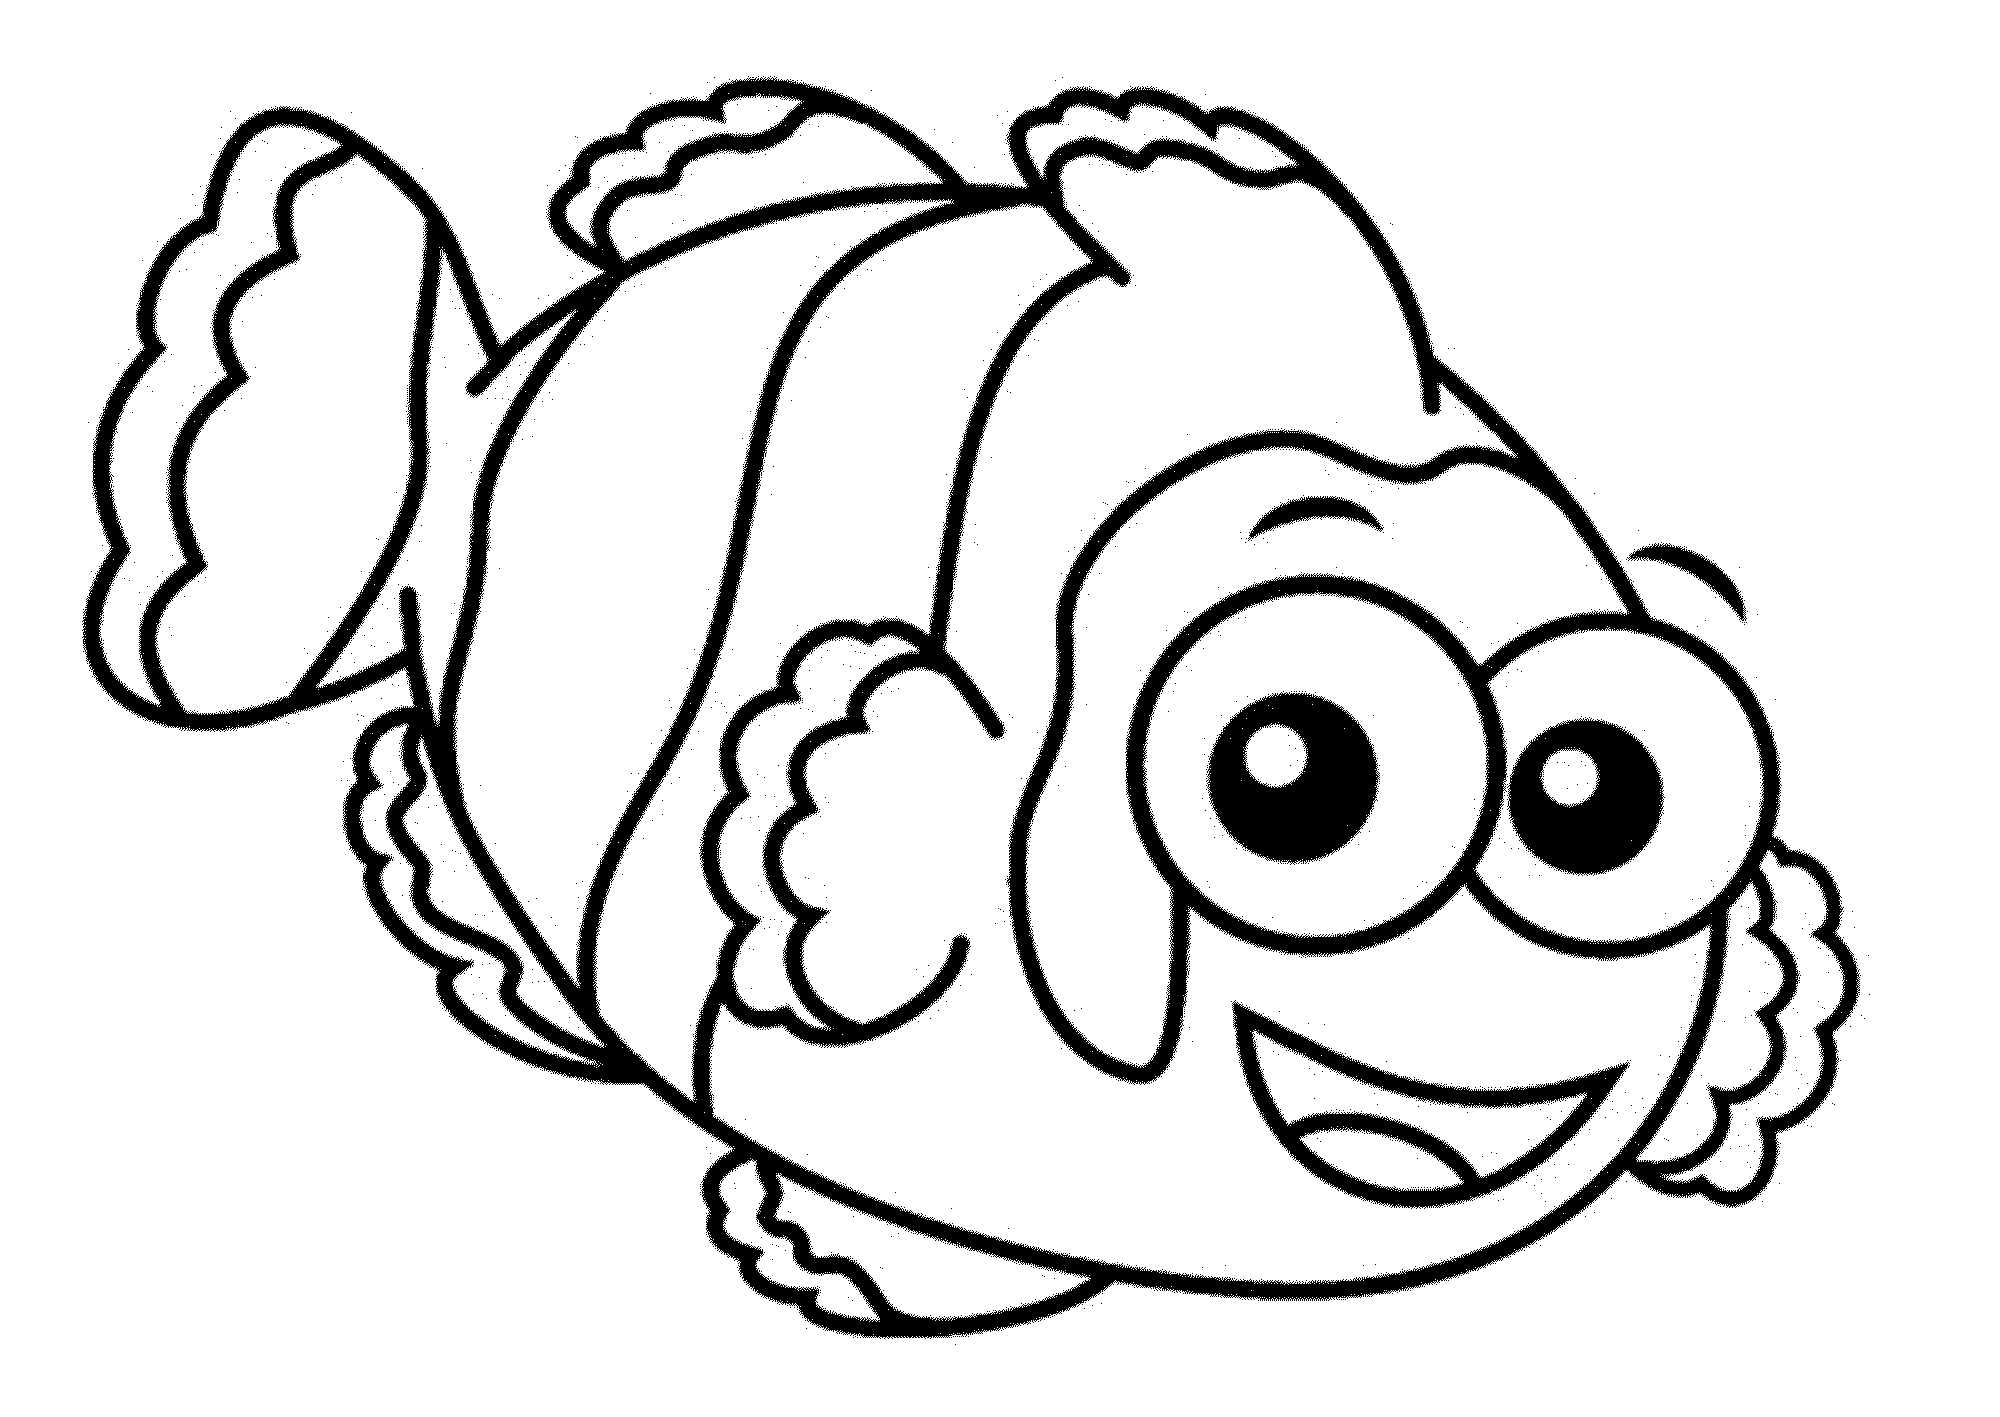 Crayola Fish Coloring Pages Cute And Educative Fish Coloring Pages Best Apps For Kids